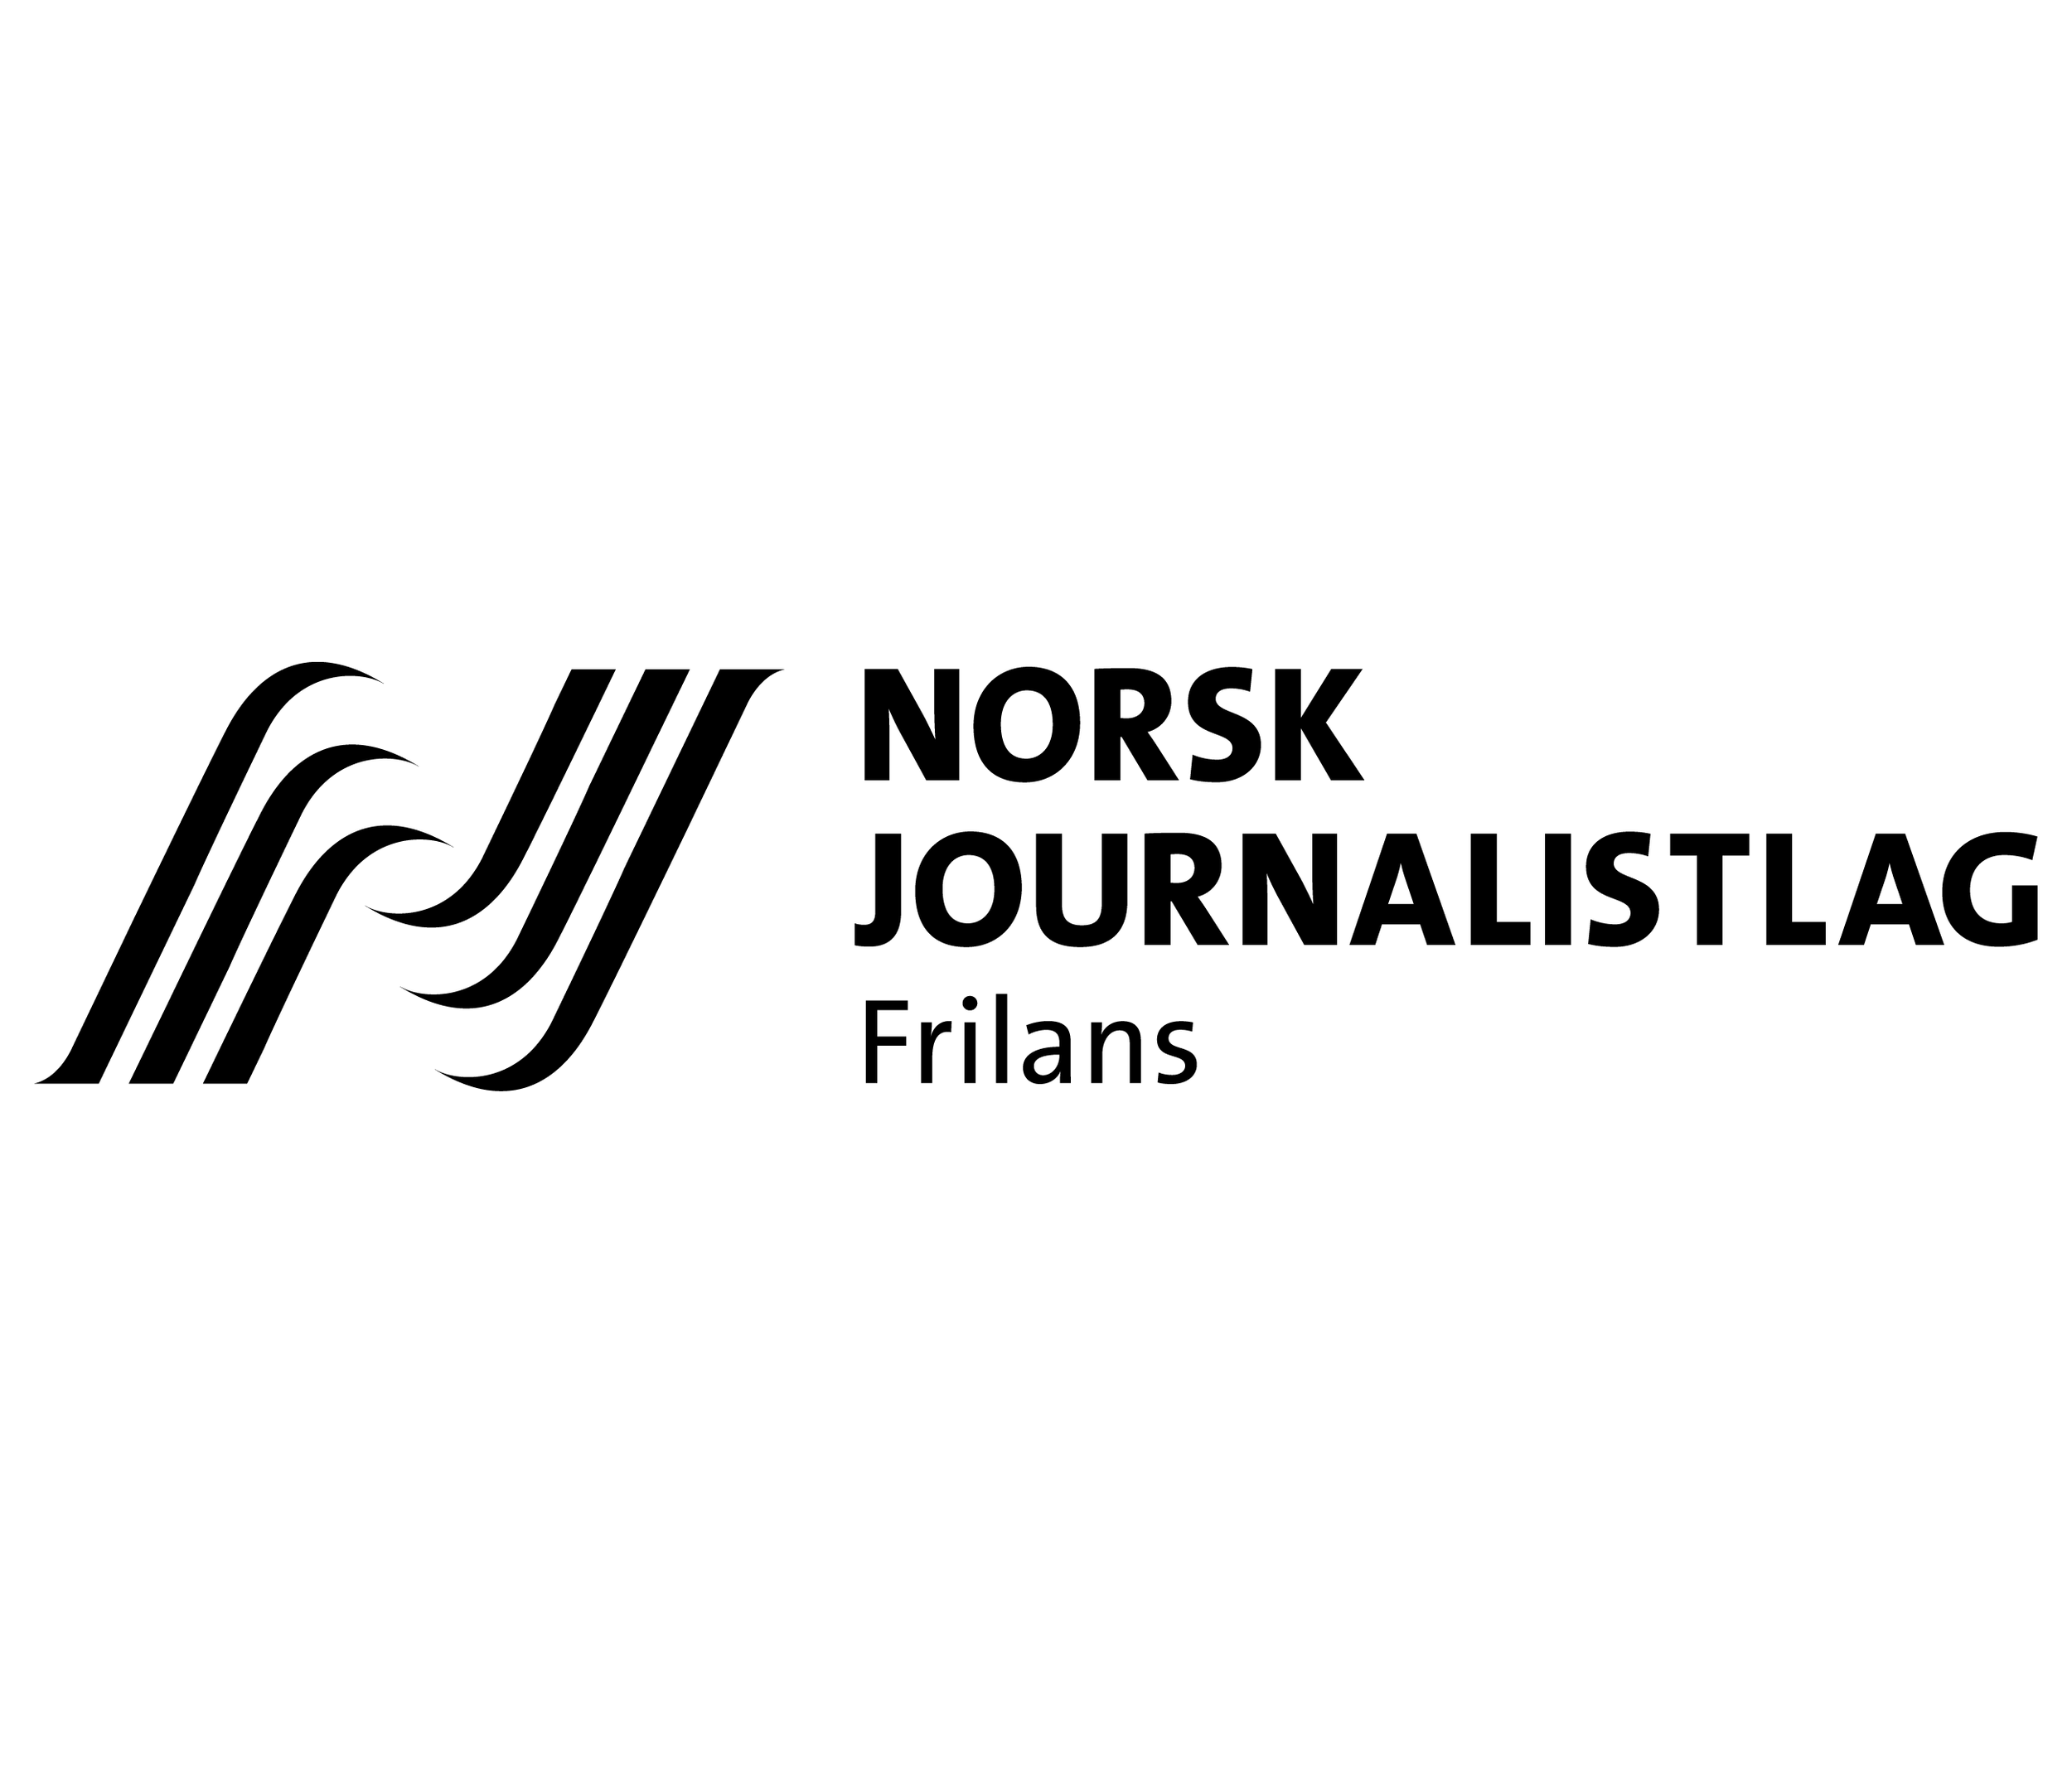 INFORMATION FROM THE NORWEGIAN UNION OF JOURNALISTS - 17.45-18.00FRIDAY MAY 24THHOUSE OF LITERATURE - EGALIA